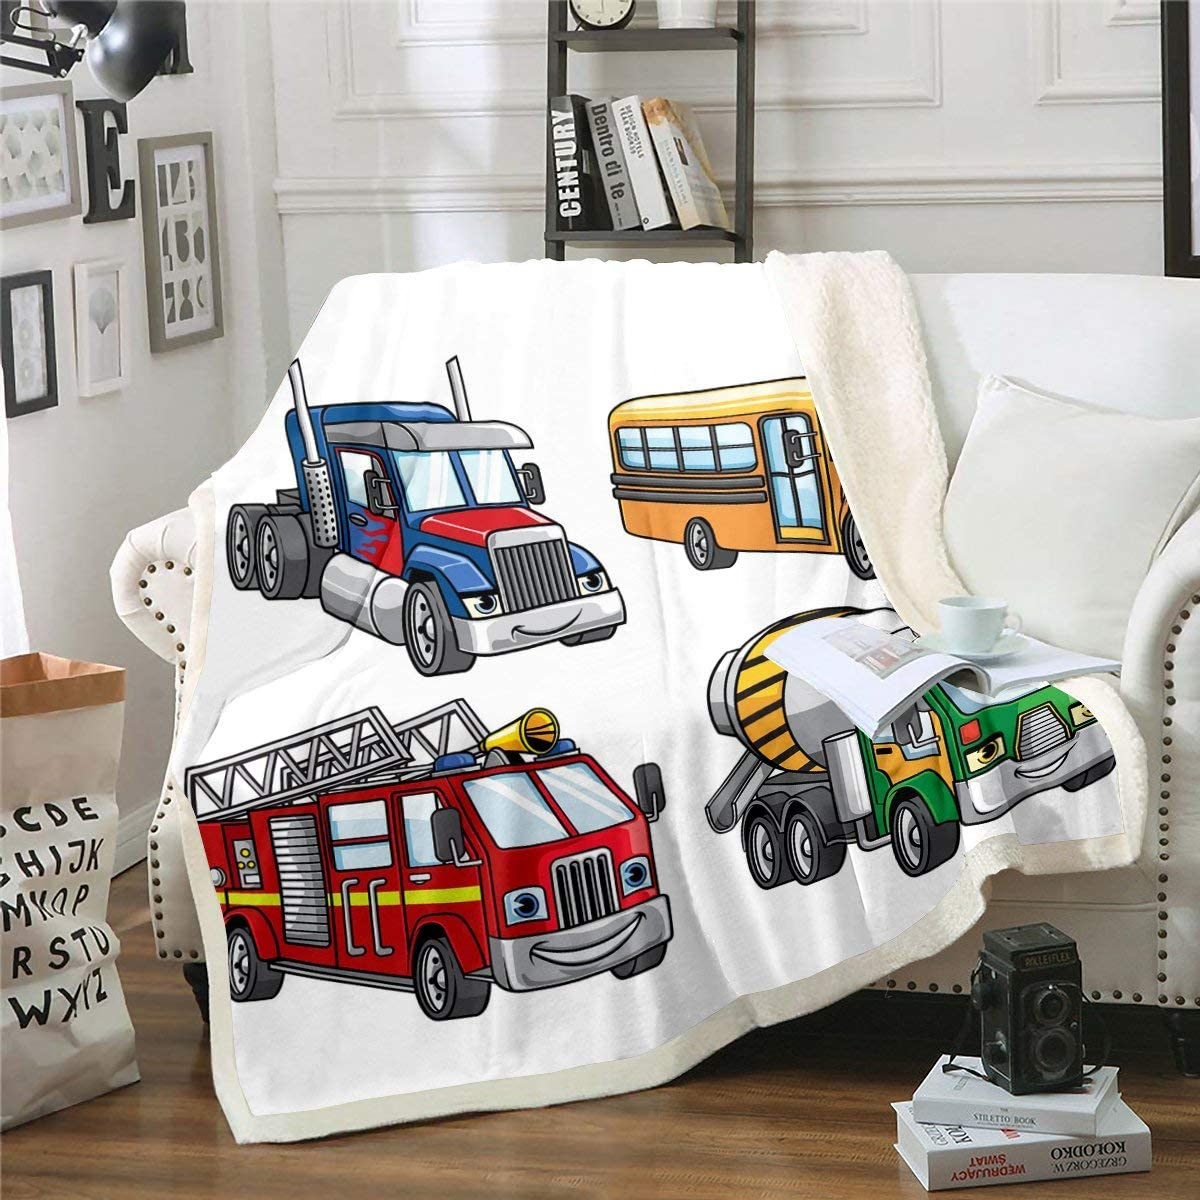 Under Construction Fleece Blanket Cartoon Fire Truck Sherpa Blanket School Bus Blanket Throw For Kids Boys Blender Truck Equipment Vehicle Fuzzy Blanket Child Dorm Decor Throw 50